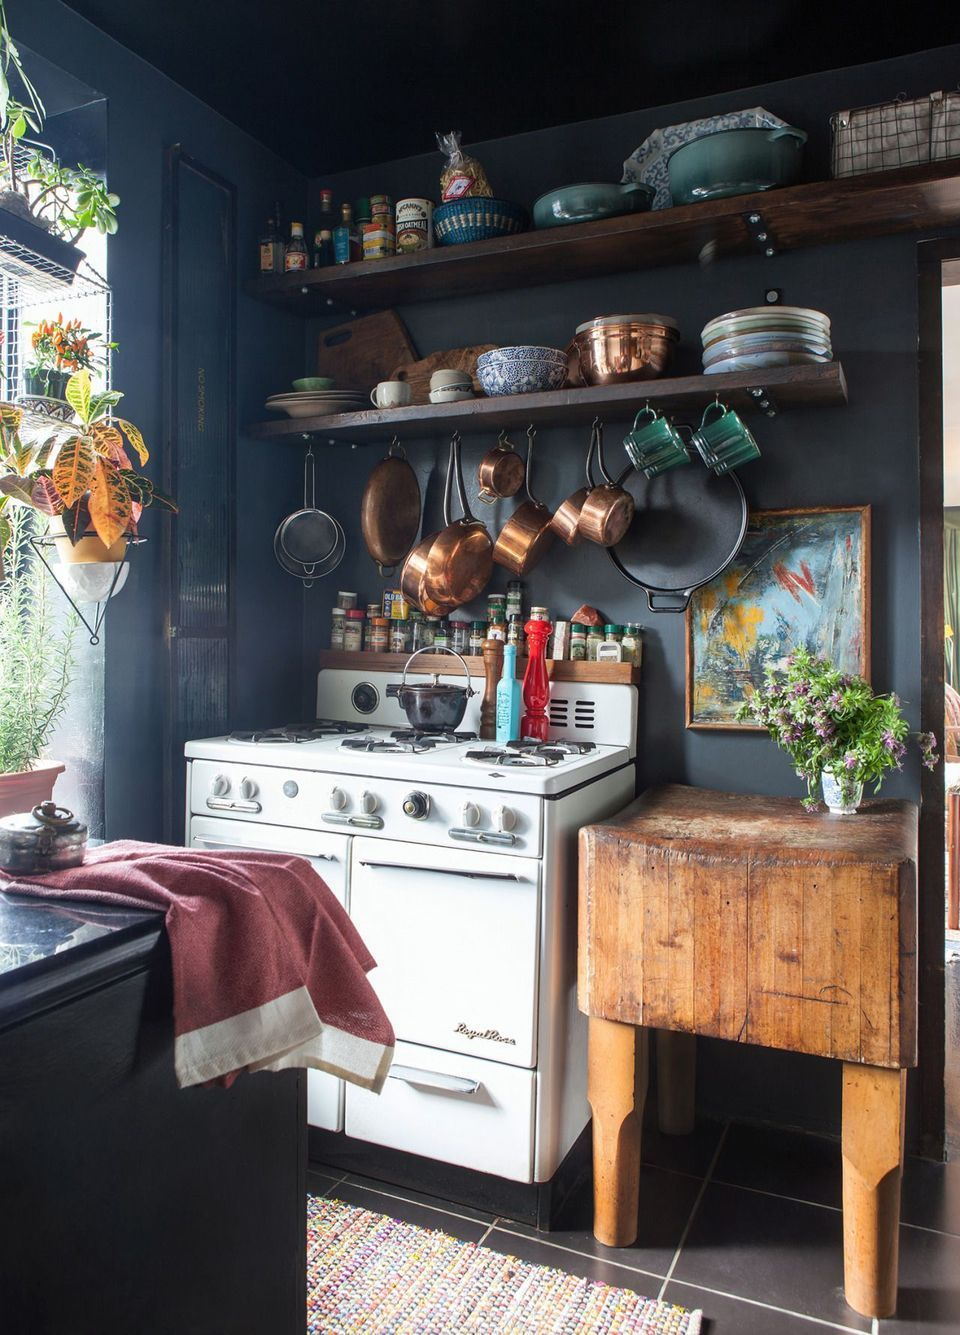 Low window behind kitchen sink   ideas to create rustic bohemian kitchen decorations